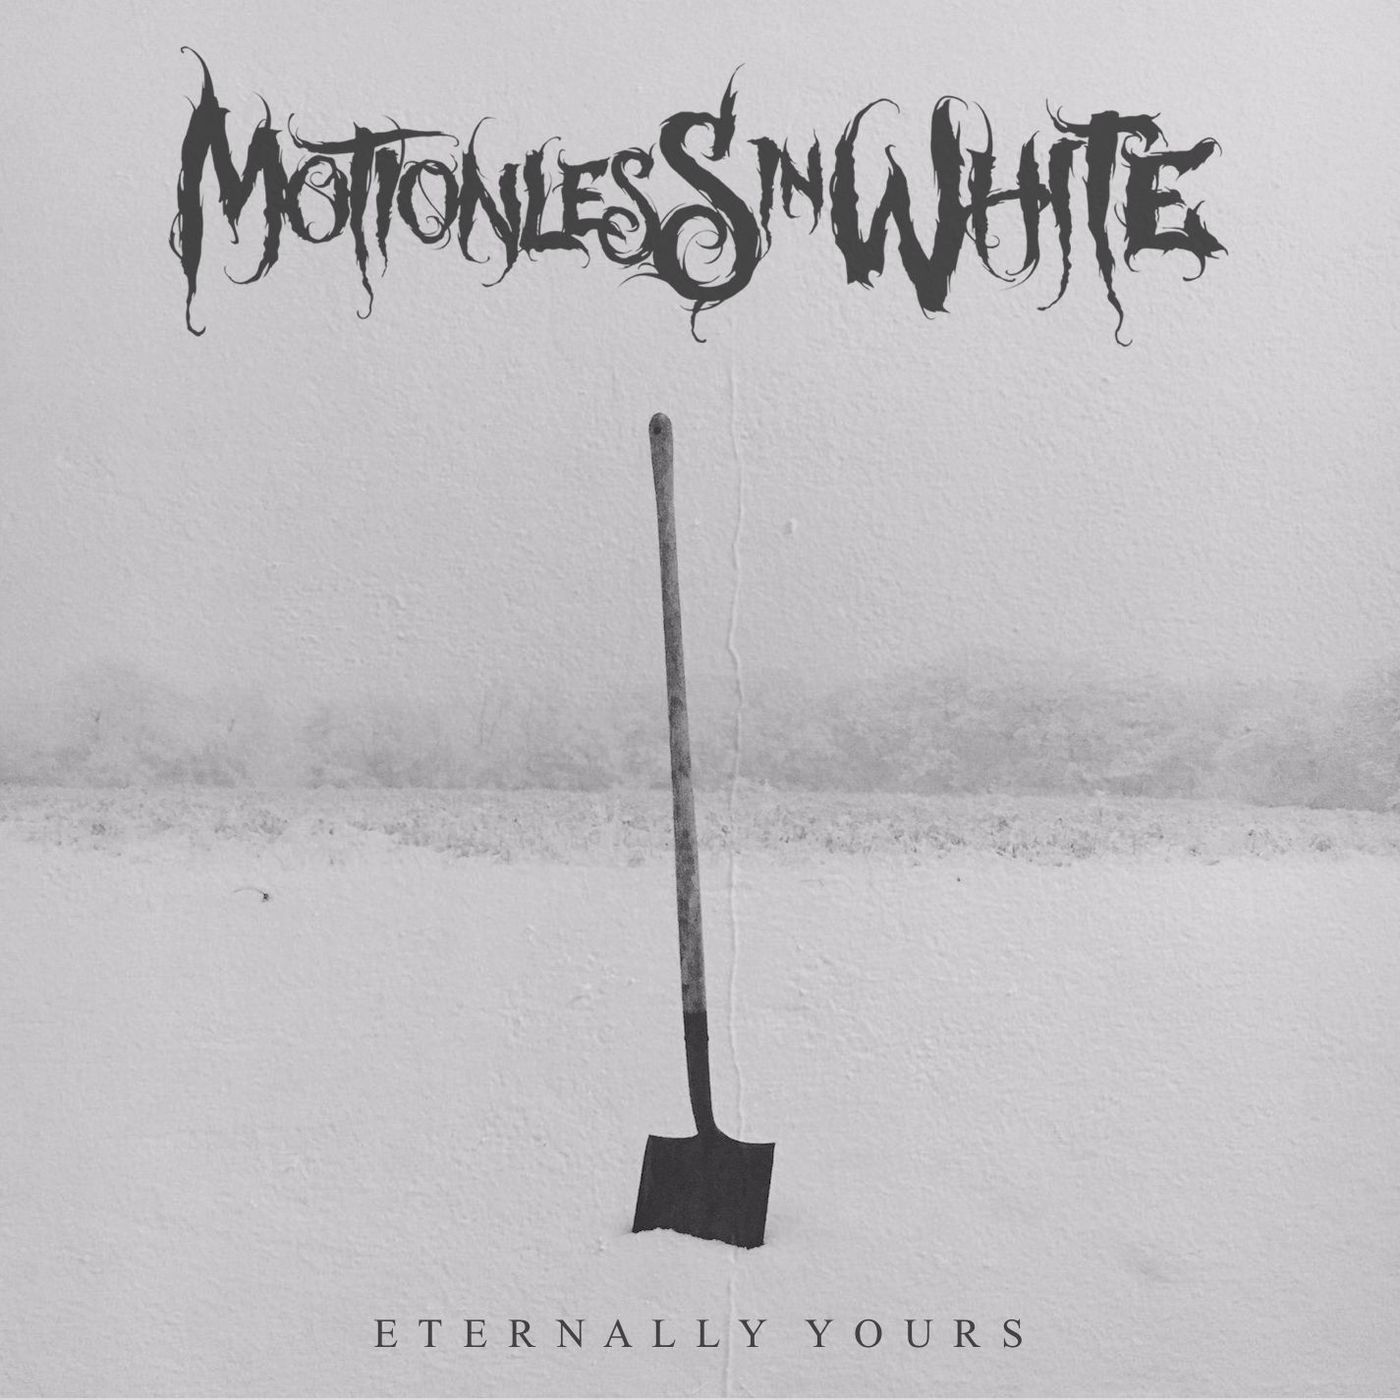 motionless in white graveyard shift torrent